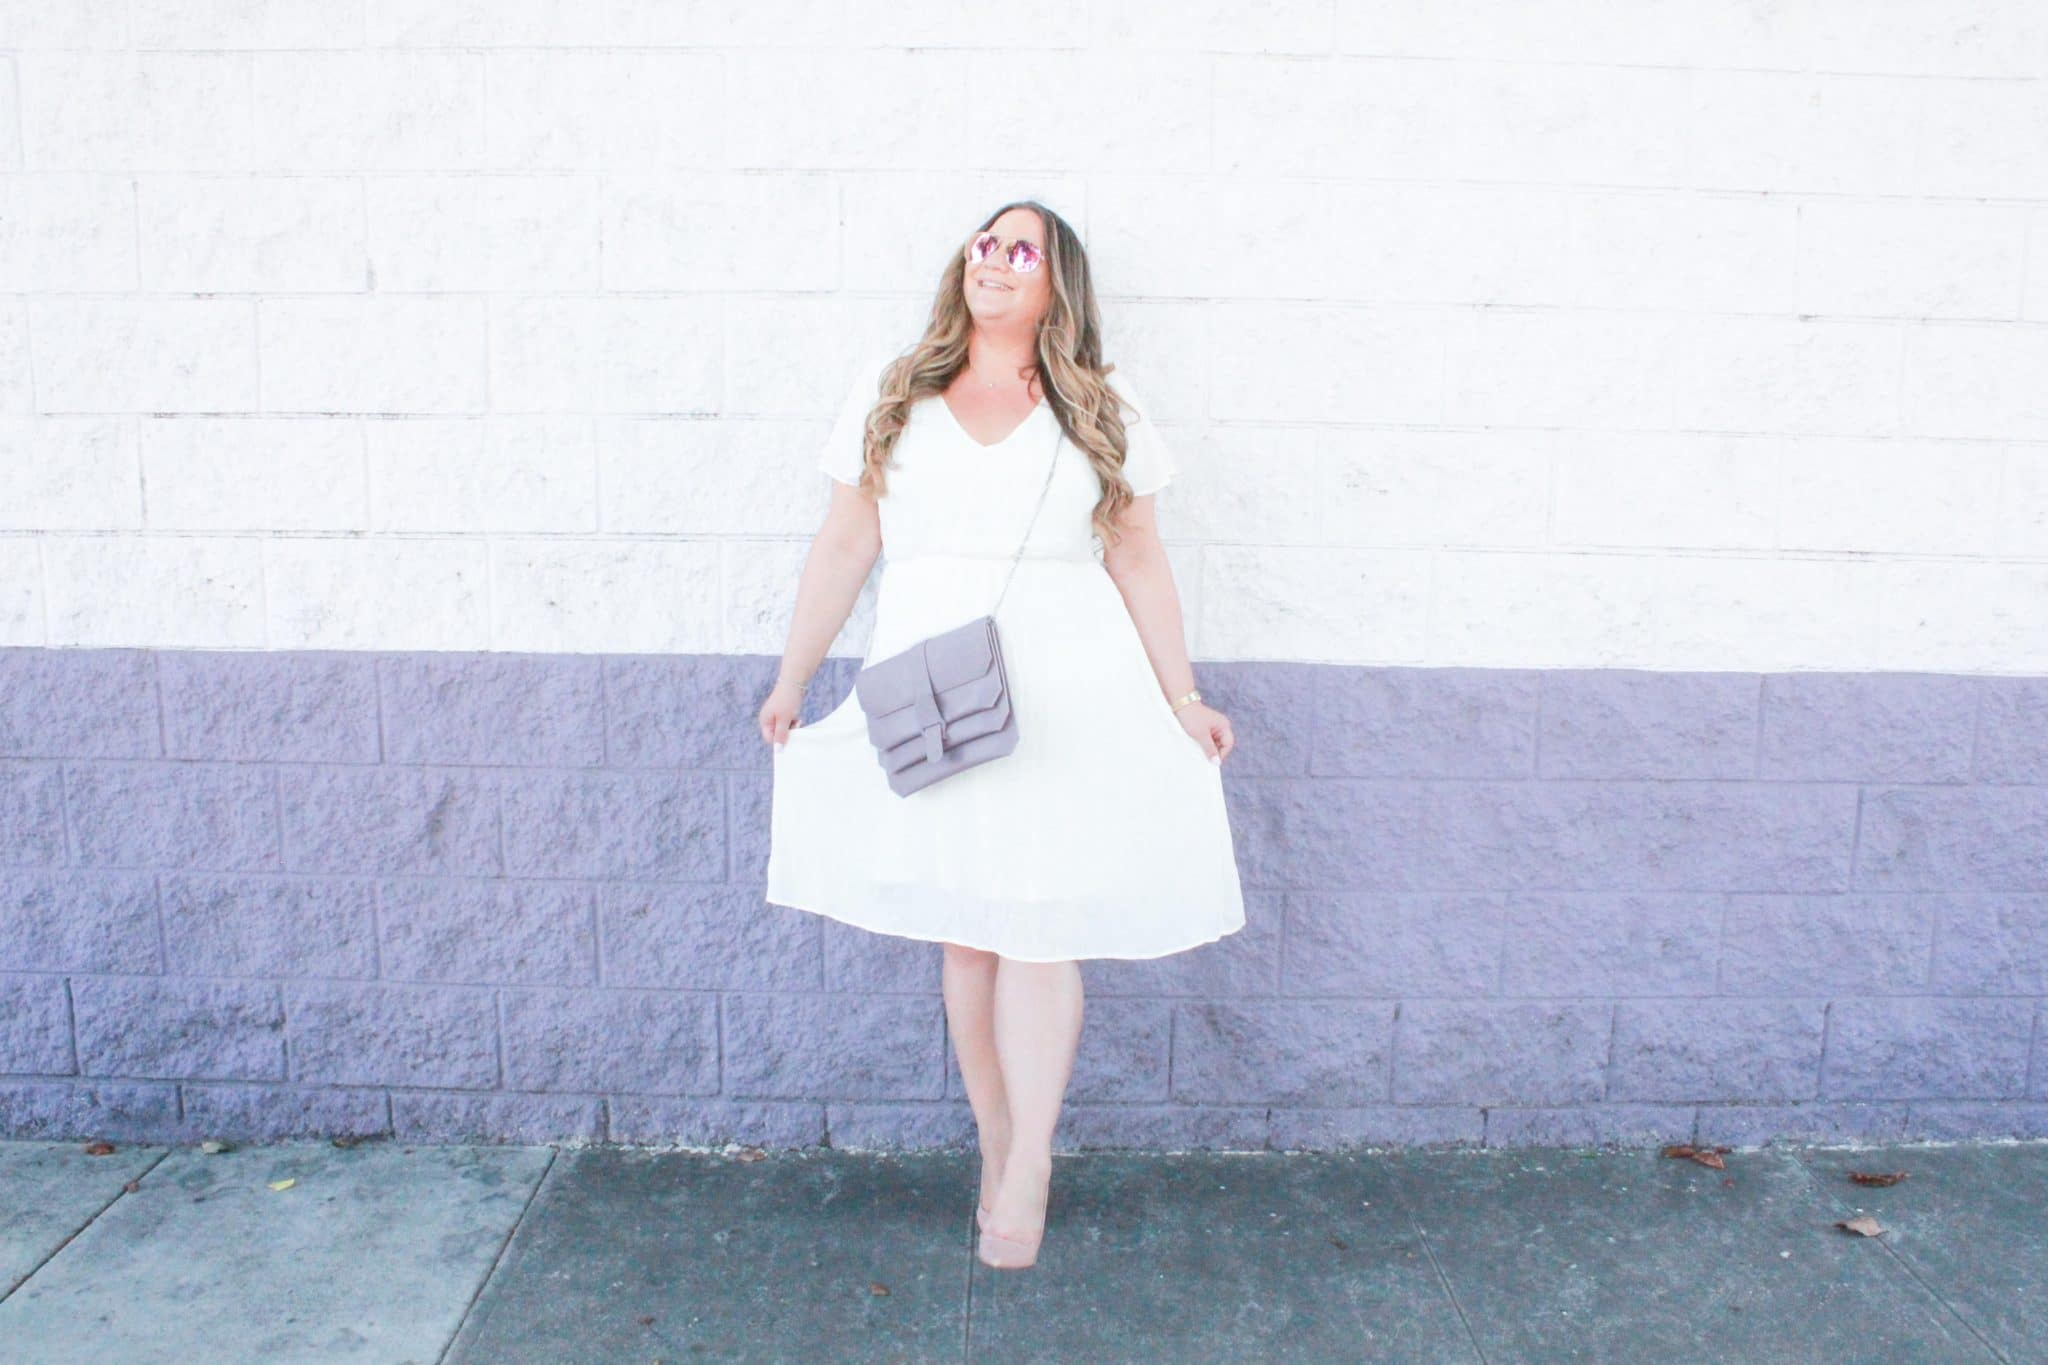 missyonmadison, missyonmadison instagram, missyonmadison blog, missyonmadison blogger, la blogger, style diaries, currently wearing, pink desert, white midi dress, pink desert dress, style goals, bloglovin, nude pumps, nude pointed toe pumps, senreve handbags, lavender handbag, crossbody bag, fall fashion, fashion blog, fashion blogger, ootd, outfit inspo,